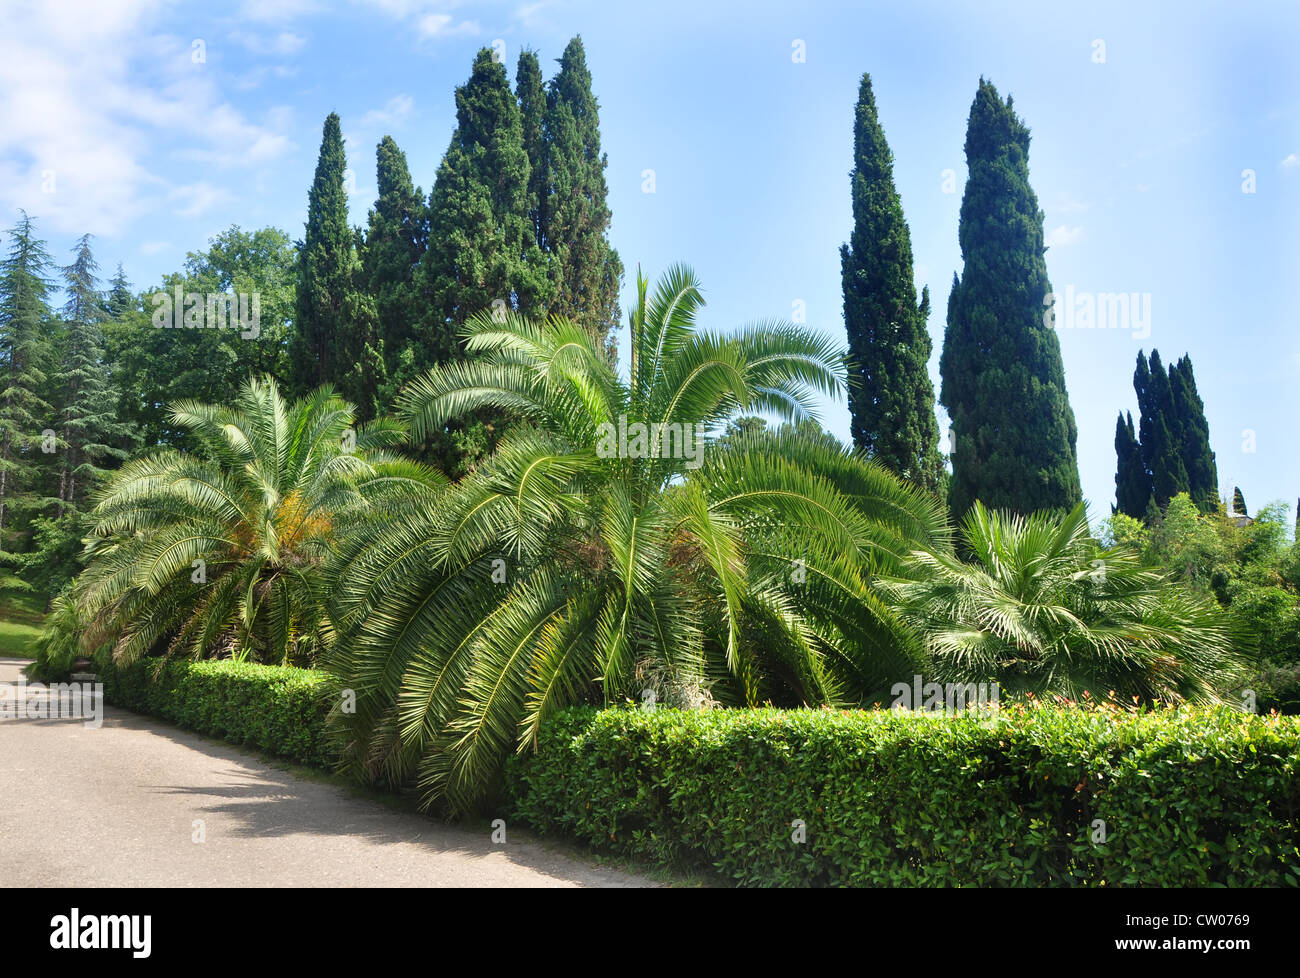 Palm-trees and cypresses in Sochi Arboretum - Stock Image